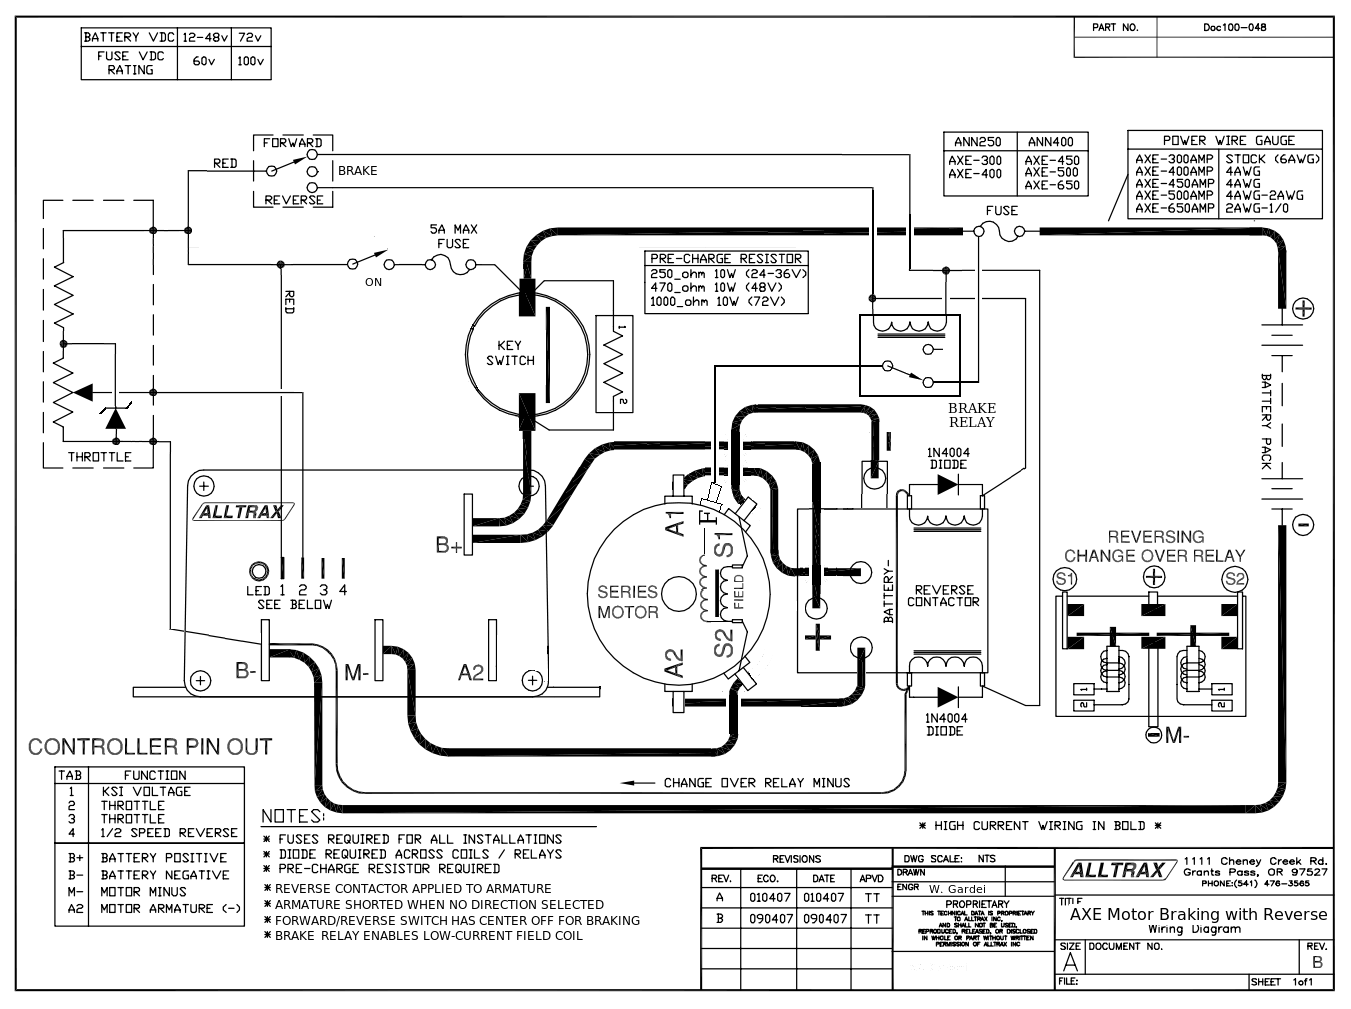 Alltrax Axe Wiring Diagram : 26 Wiring Diagram Images